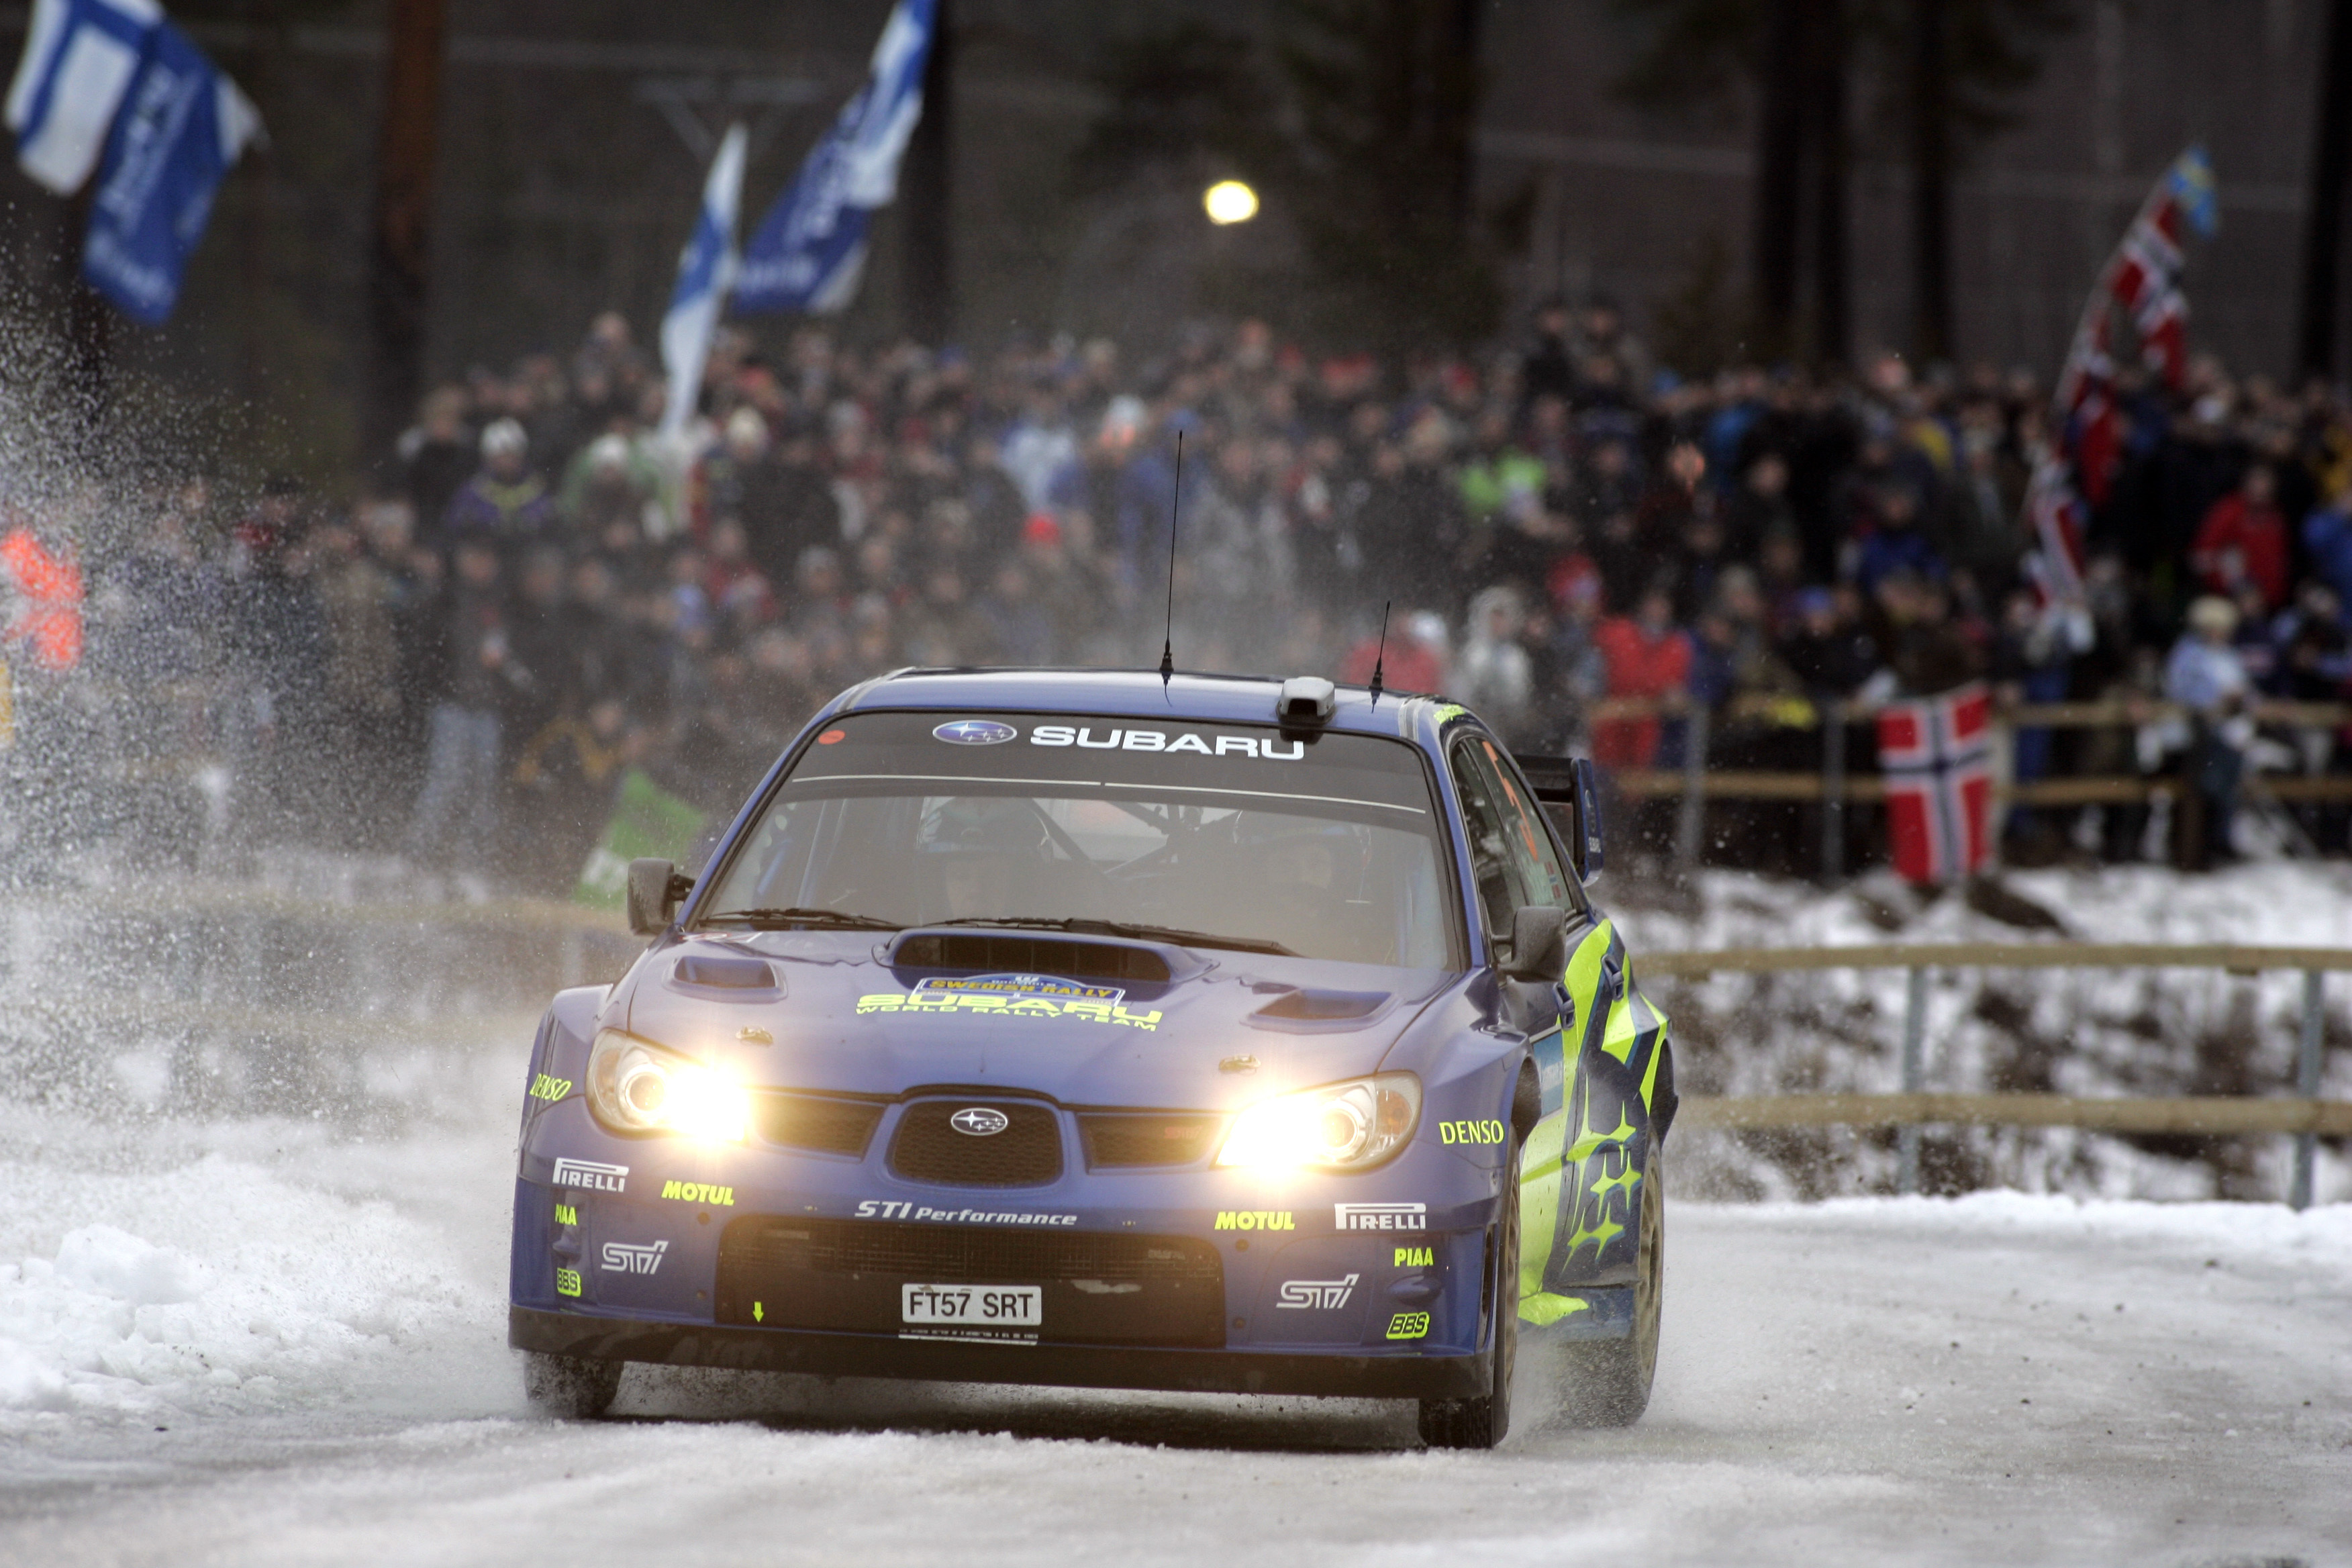 Sti Impreza Wrx wrc HD Wallpaper